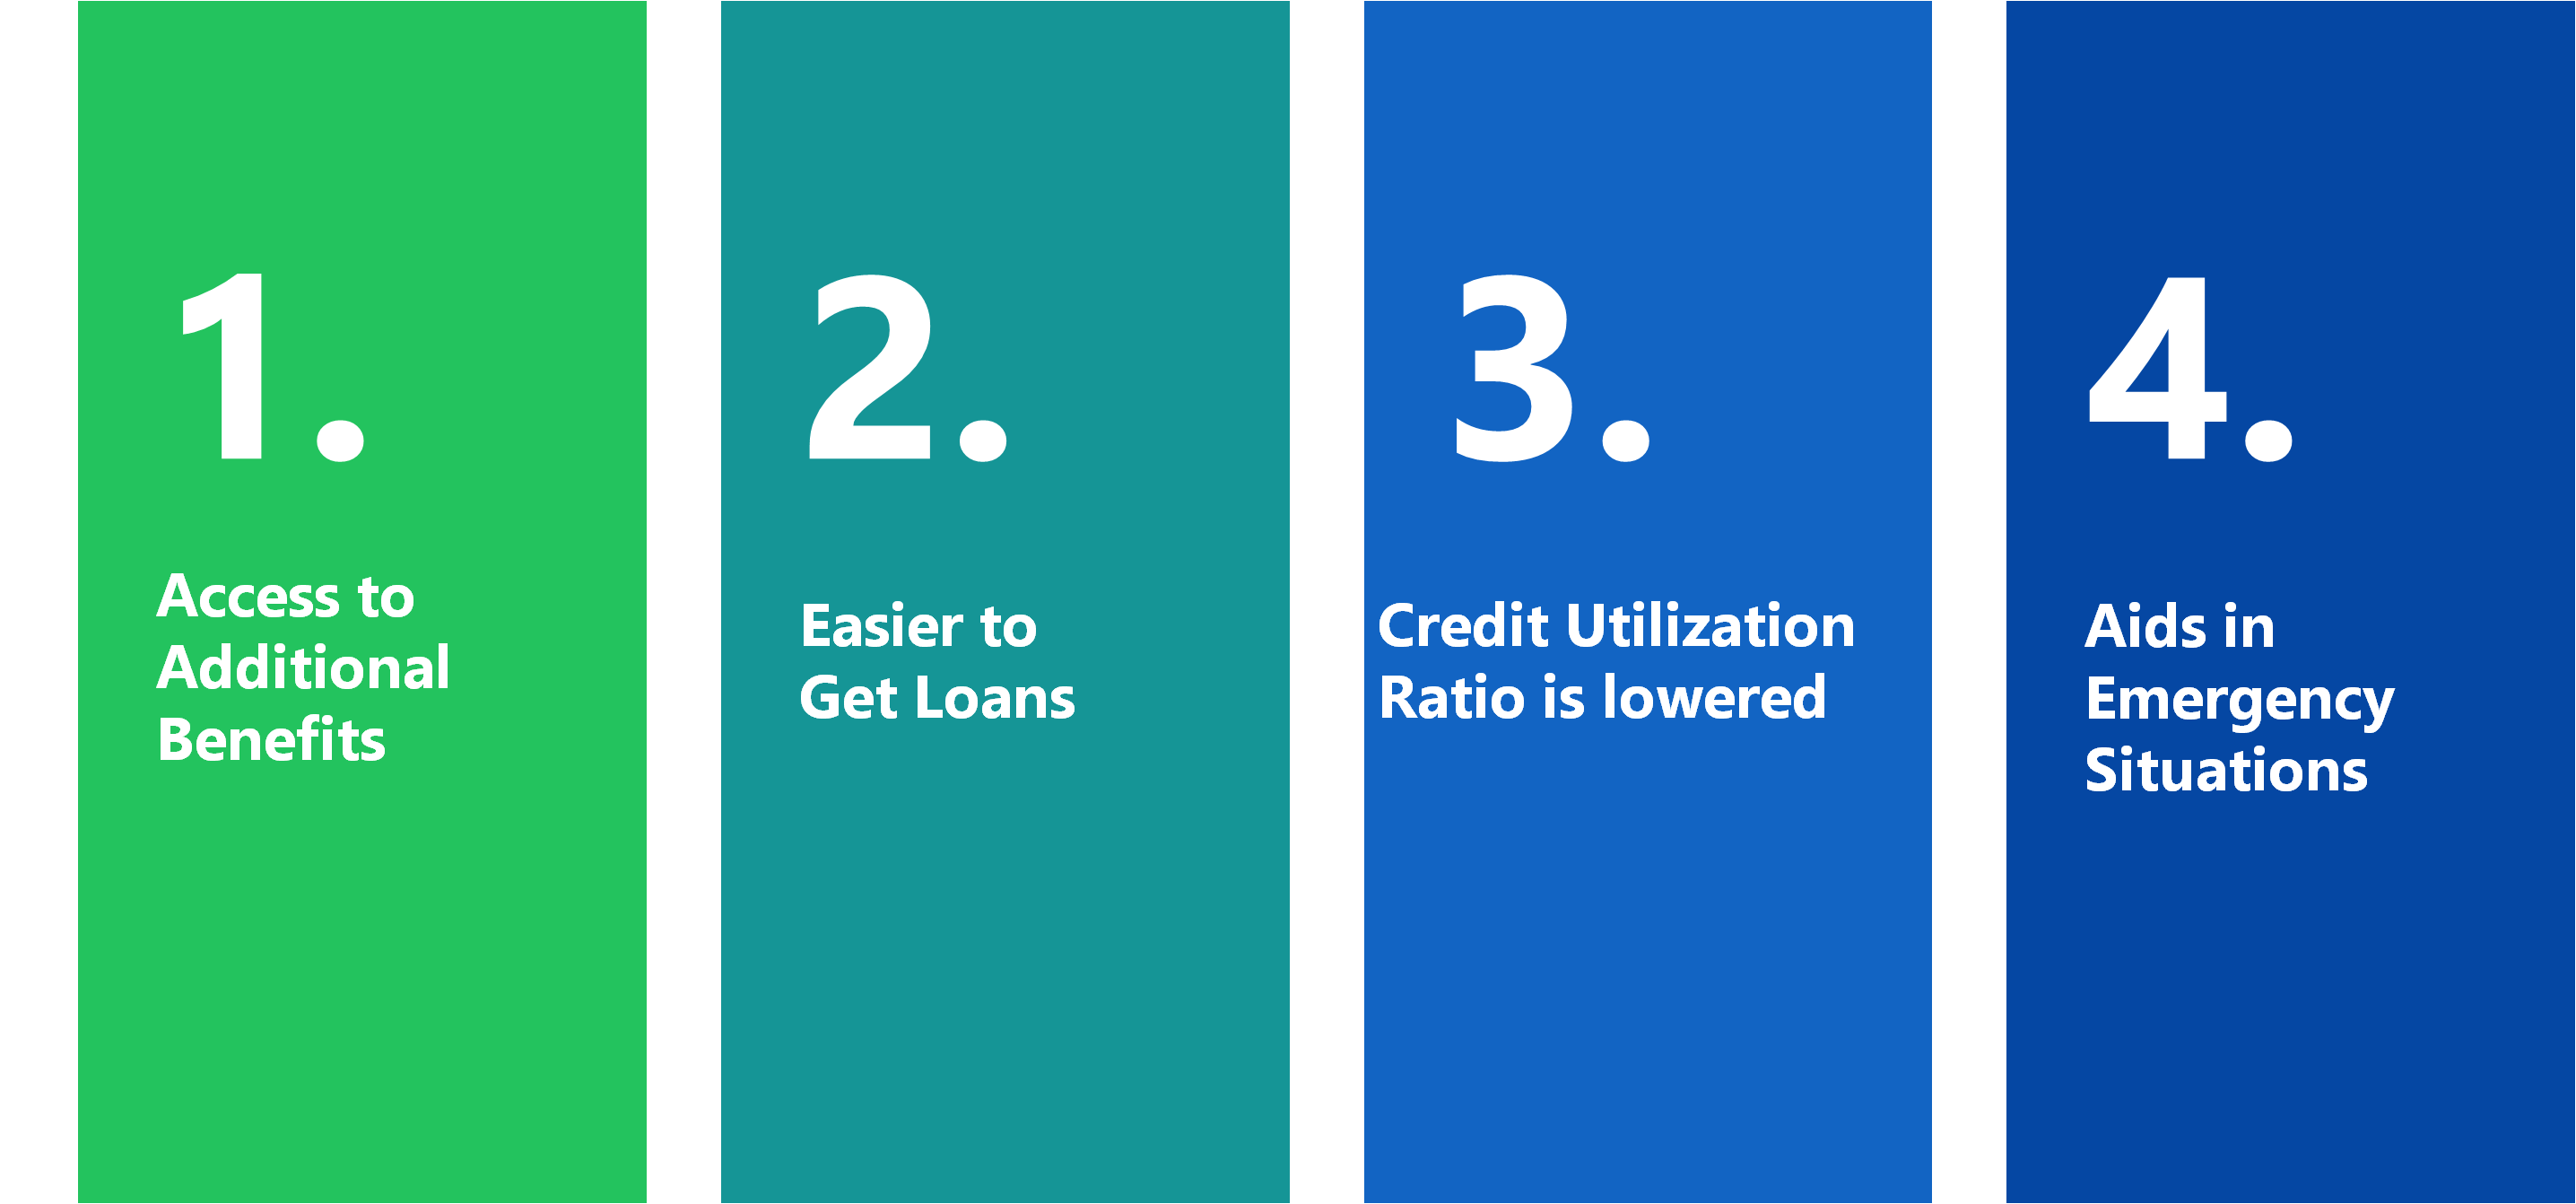 Benefits of having a higher Credit Card limit